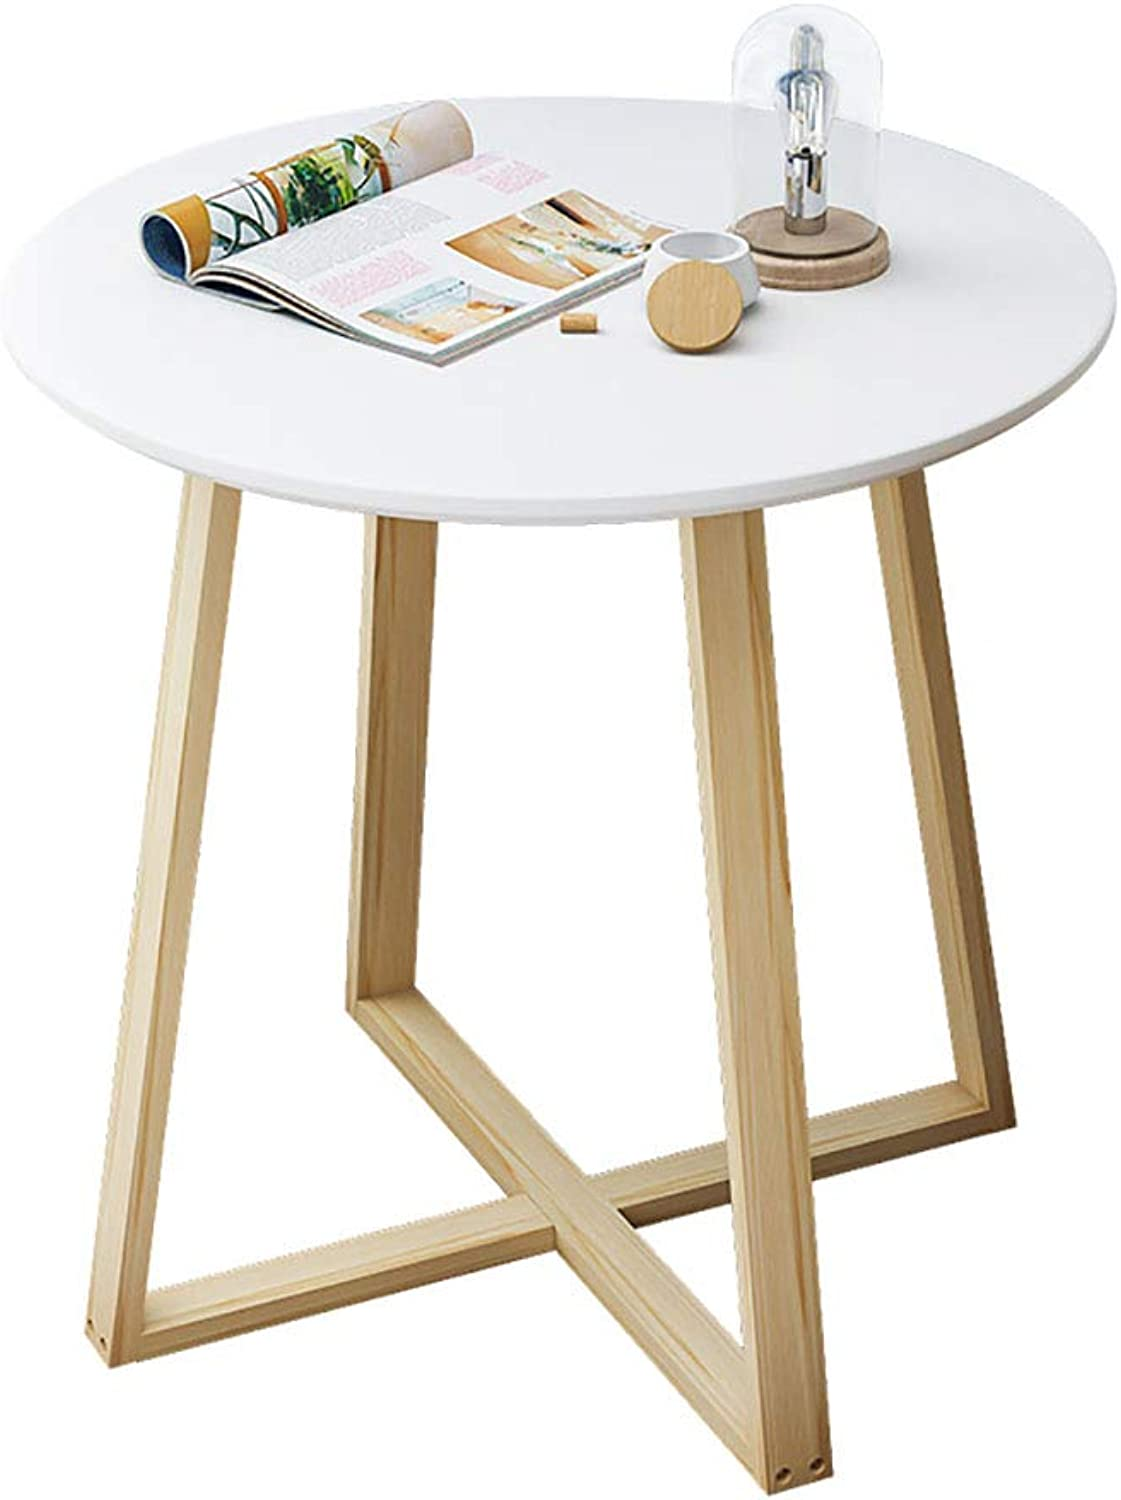 Nordic Simple Coffee Table Solid Wood Round Small Side Table Bedroom Mini Bed Table European Sofa Corner